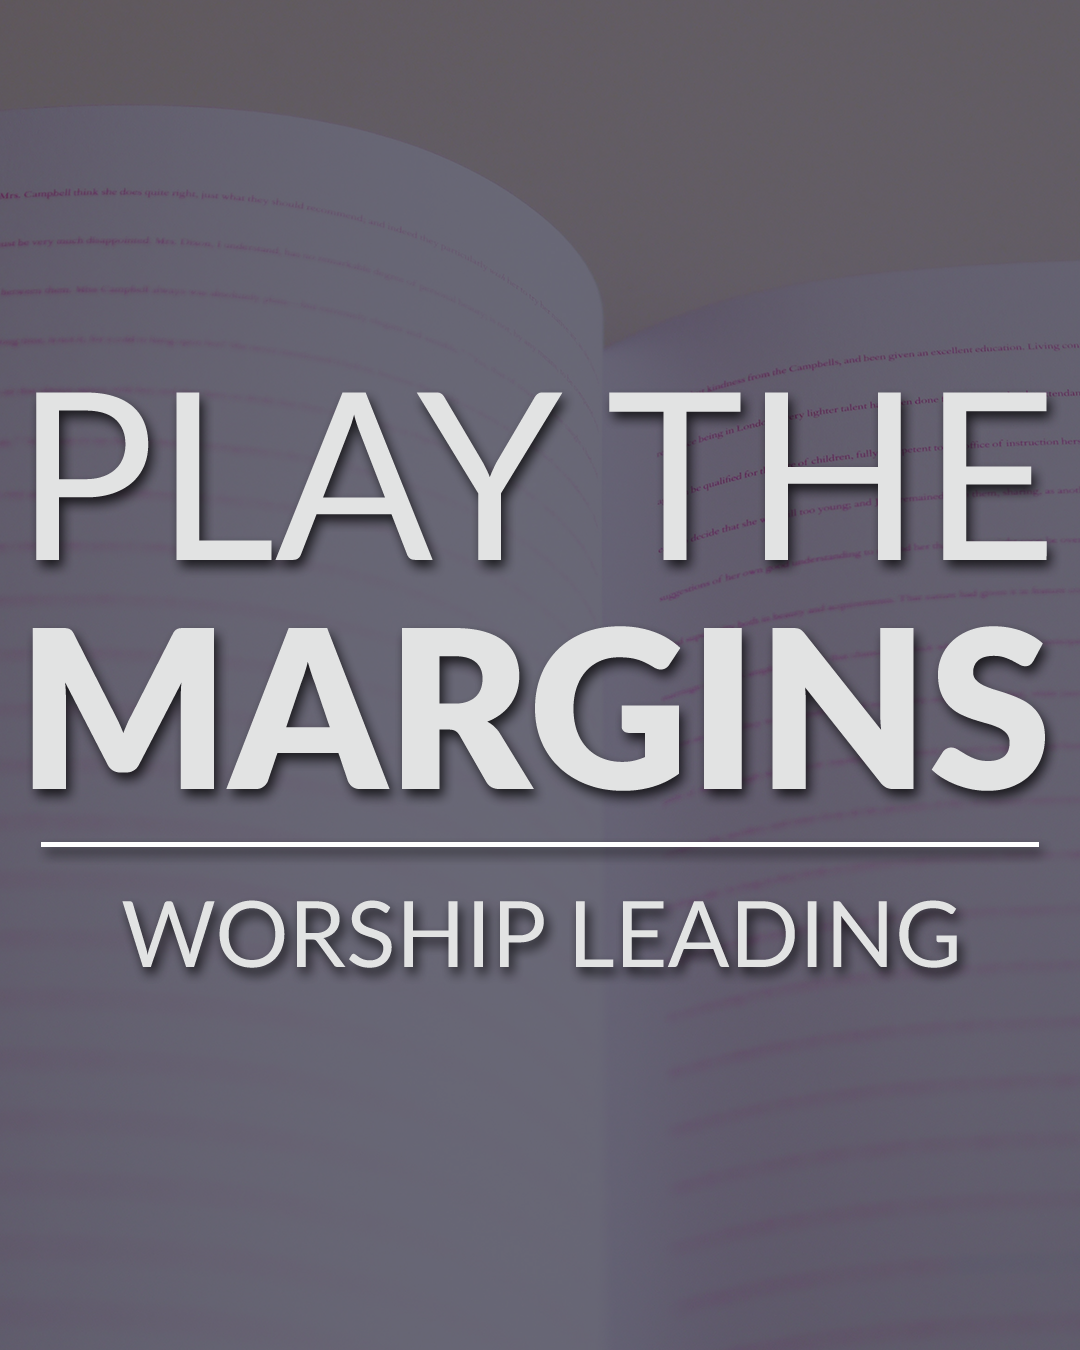 play the margins in worship leading